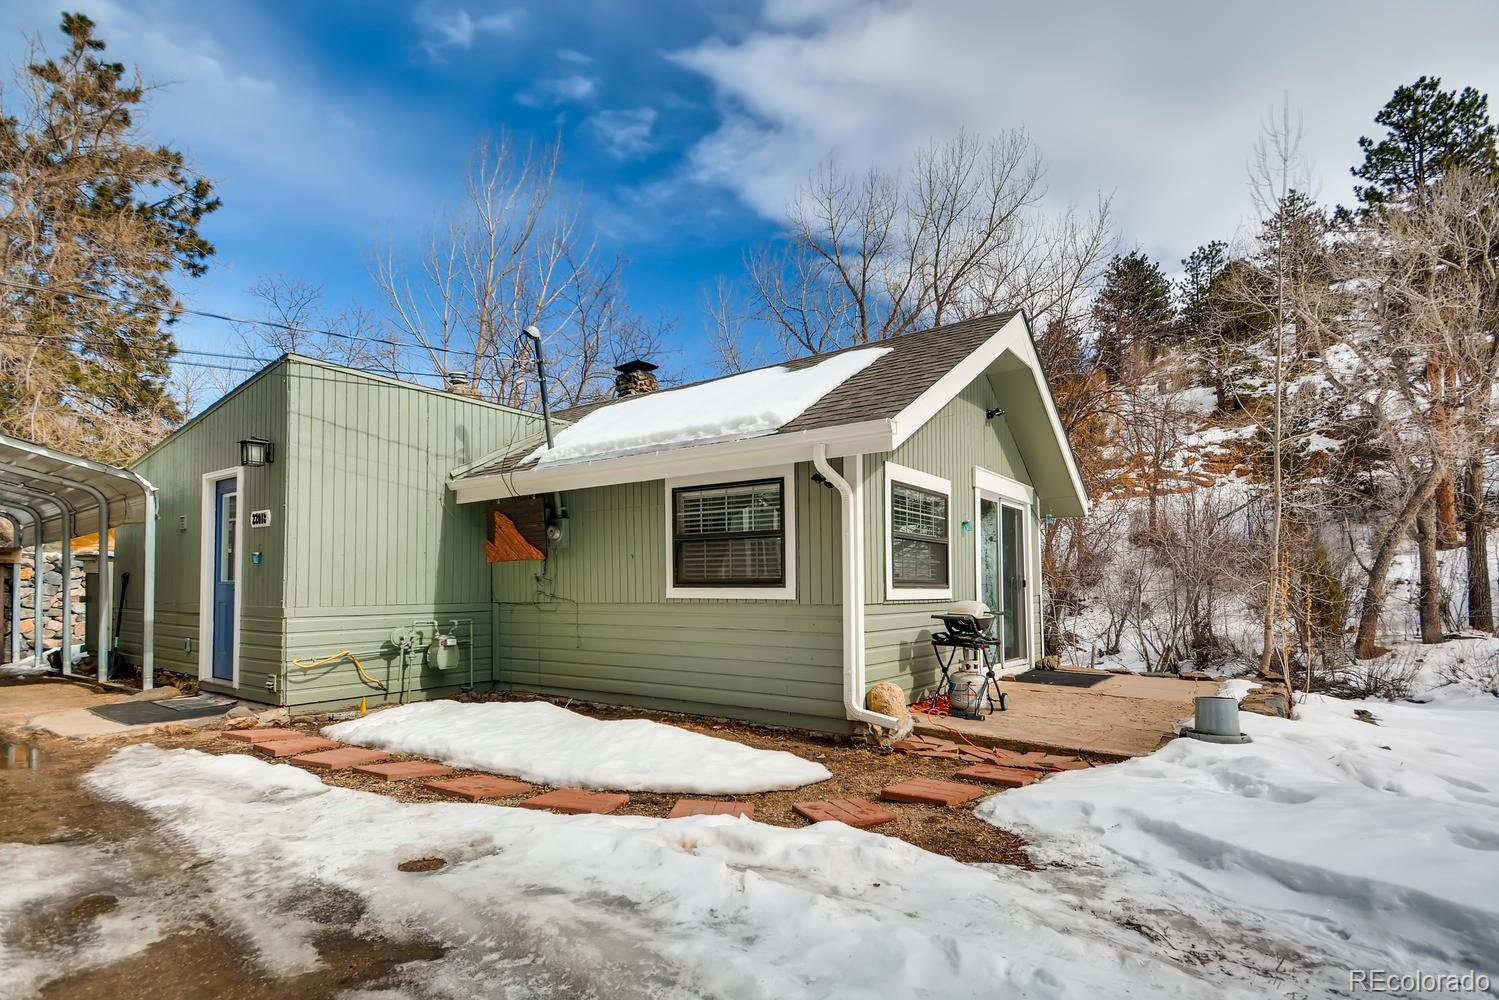 MLS# 7169147 - 5 - 22018 Miller Lane, Idledale, CO 80453